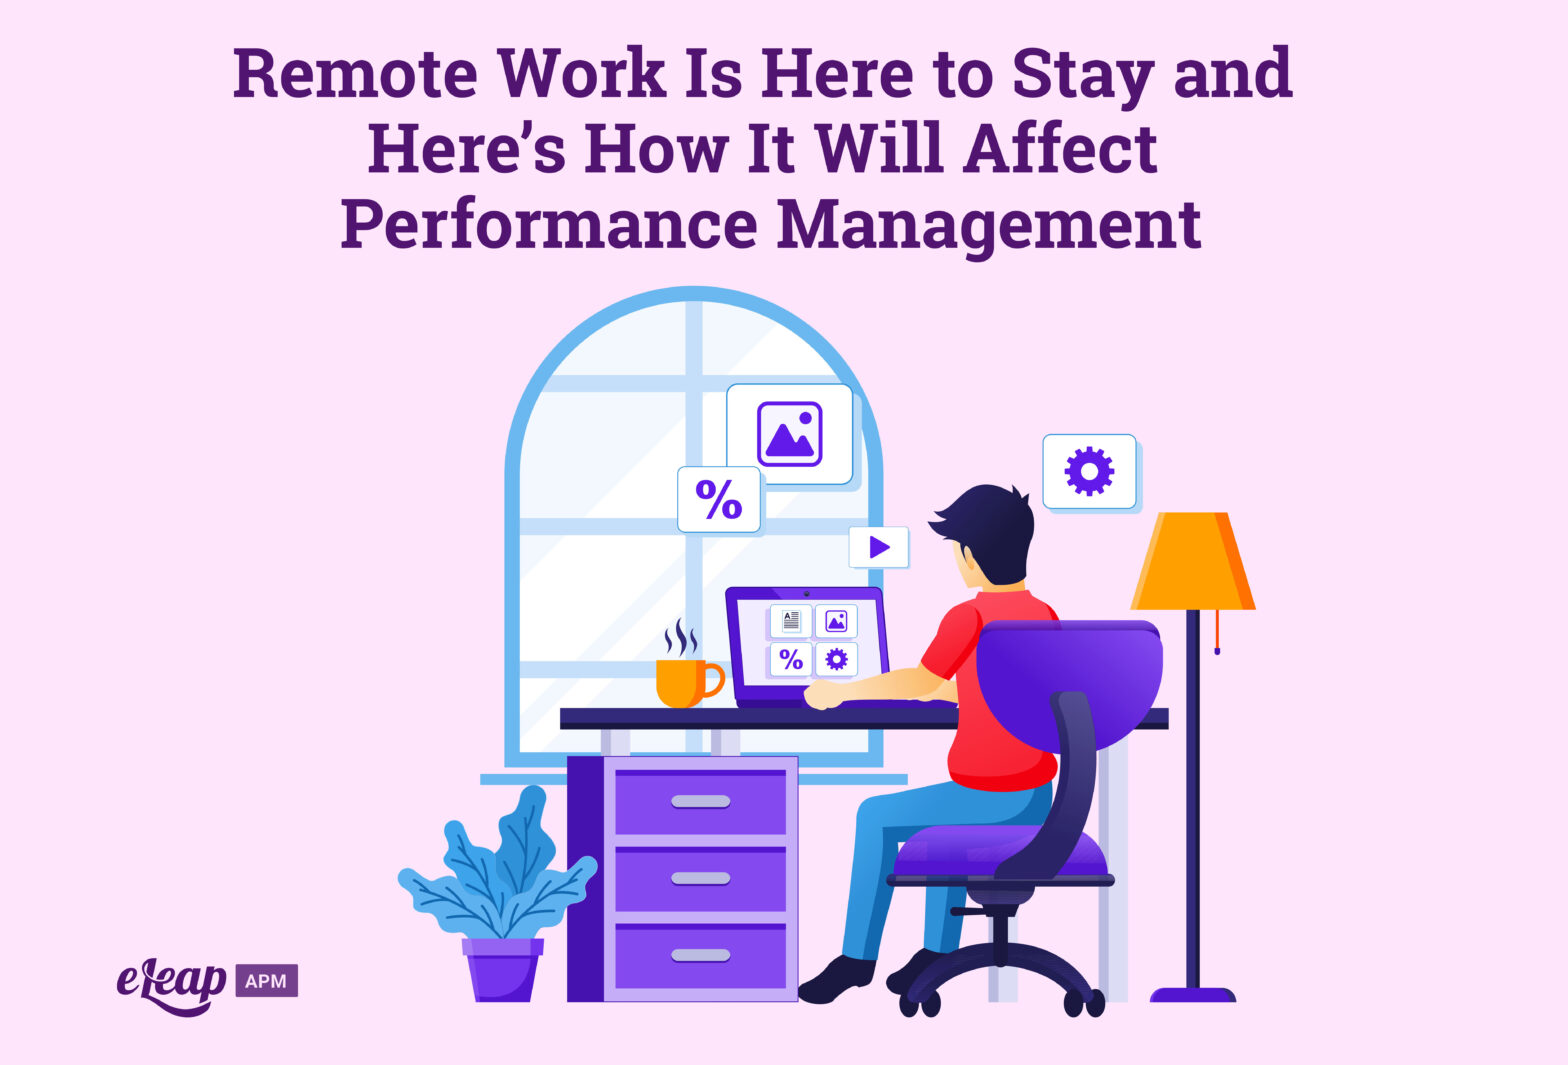 Remote Work Is Here to Stay and Here's How It Will Affect Performance Management